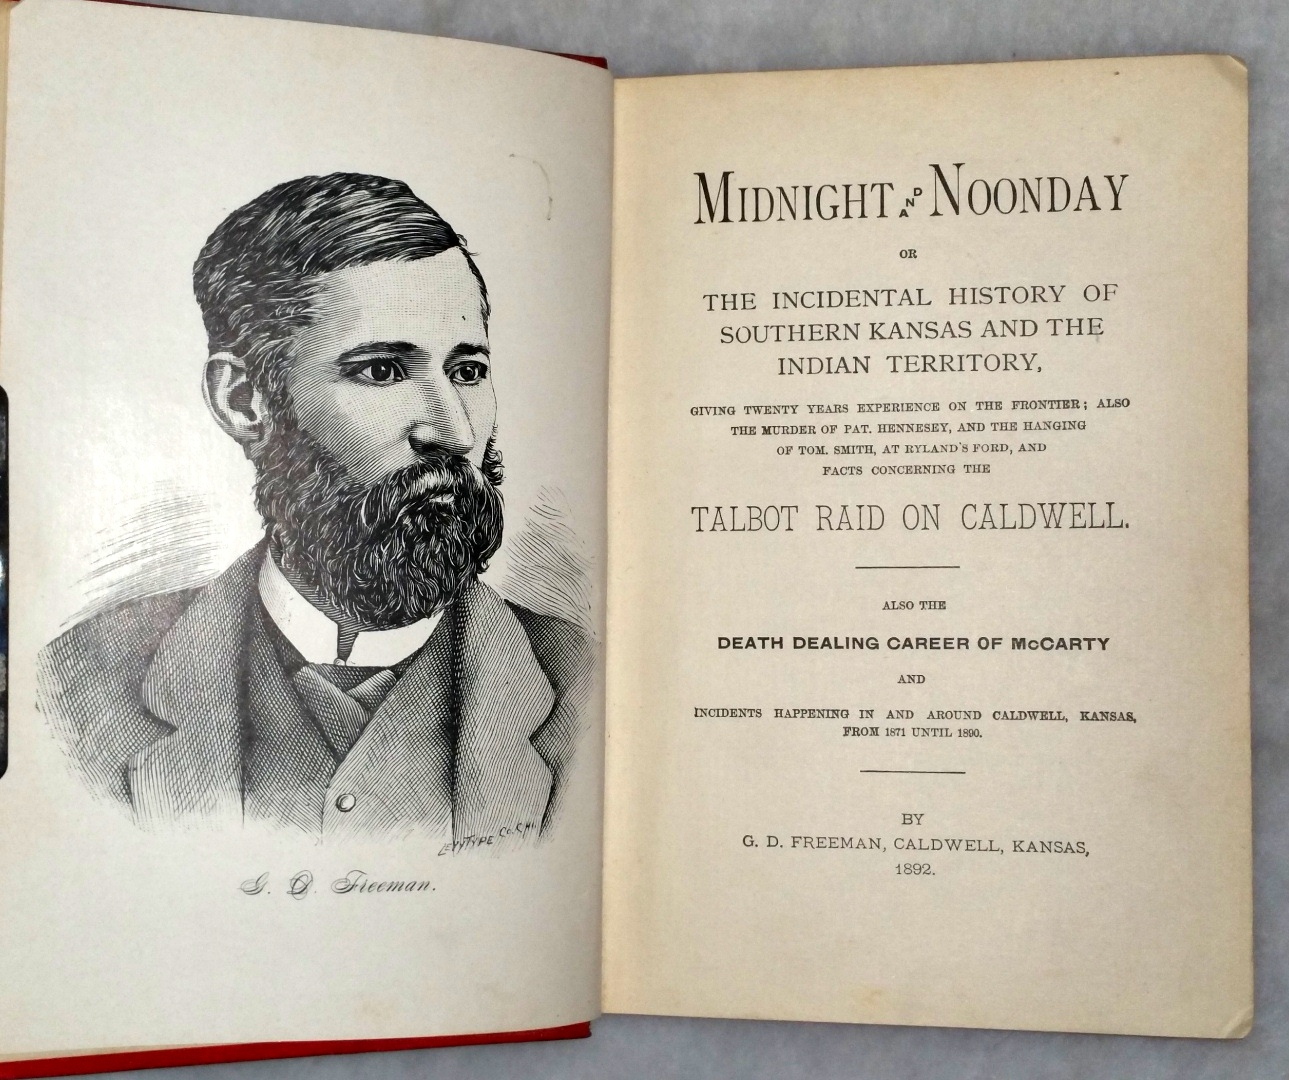 Image for Midnight and Noonday or The Incidental History of Southern Kansas and the Indian Territory... And Facts Concerning the Talbot Raid on Caldwell...